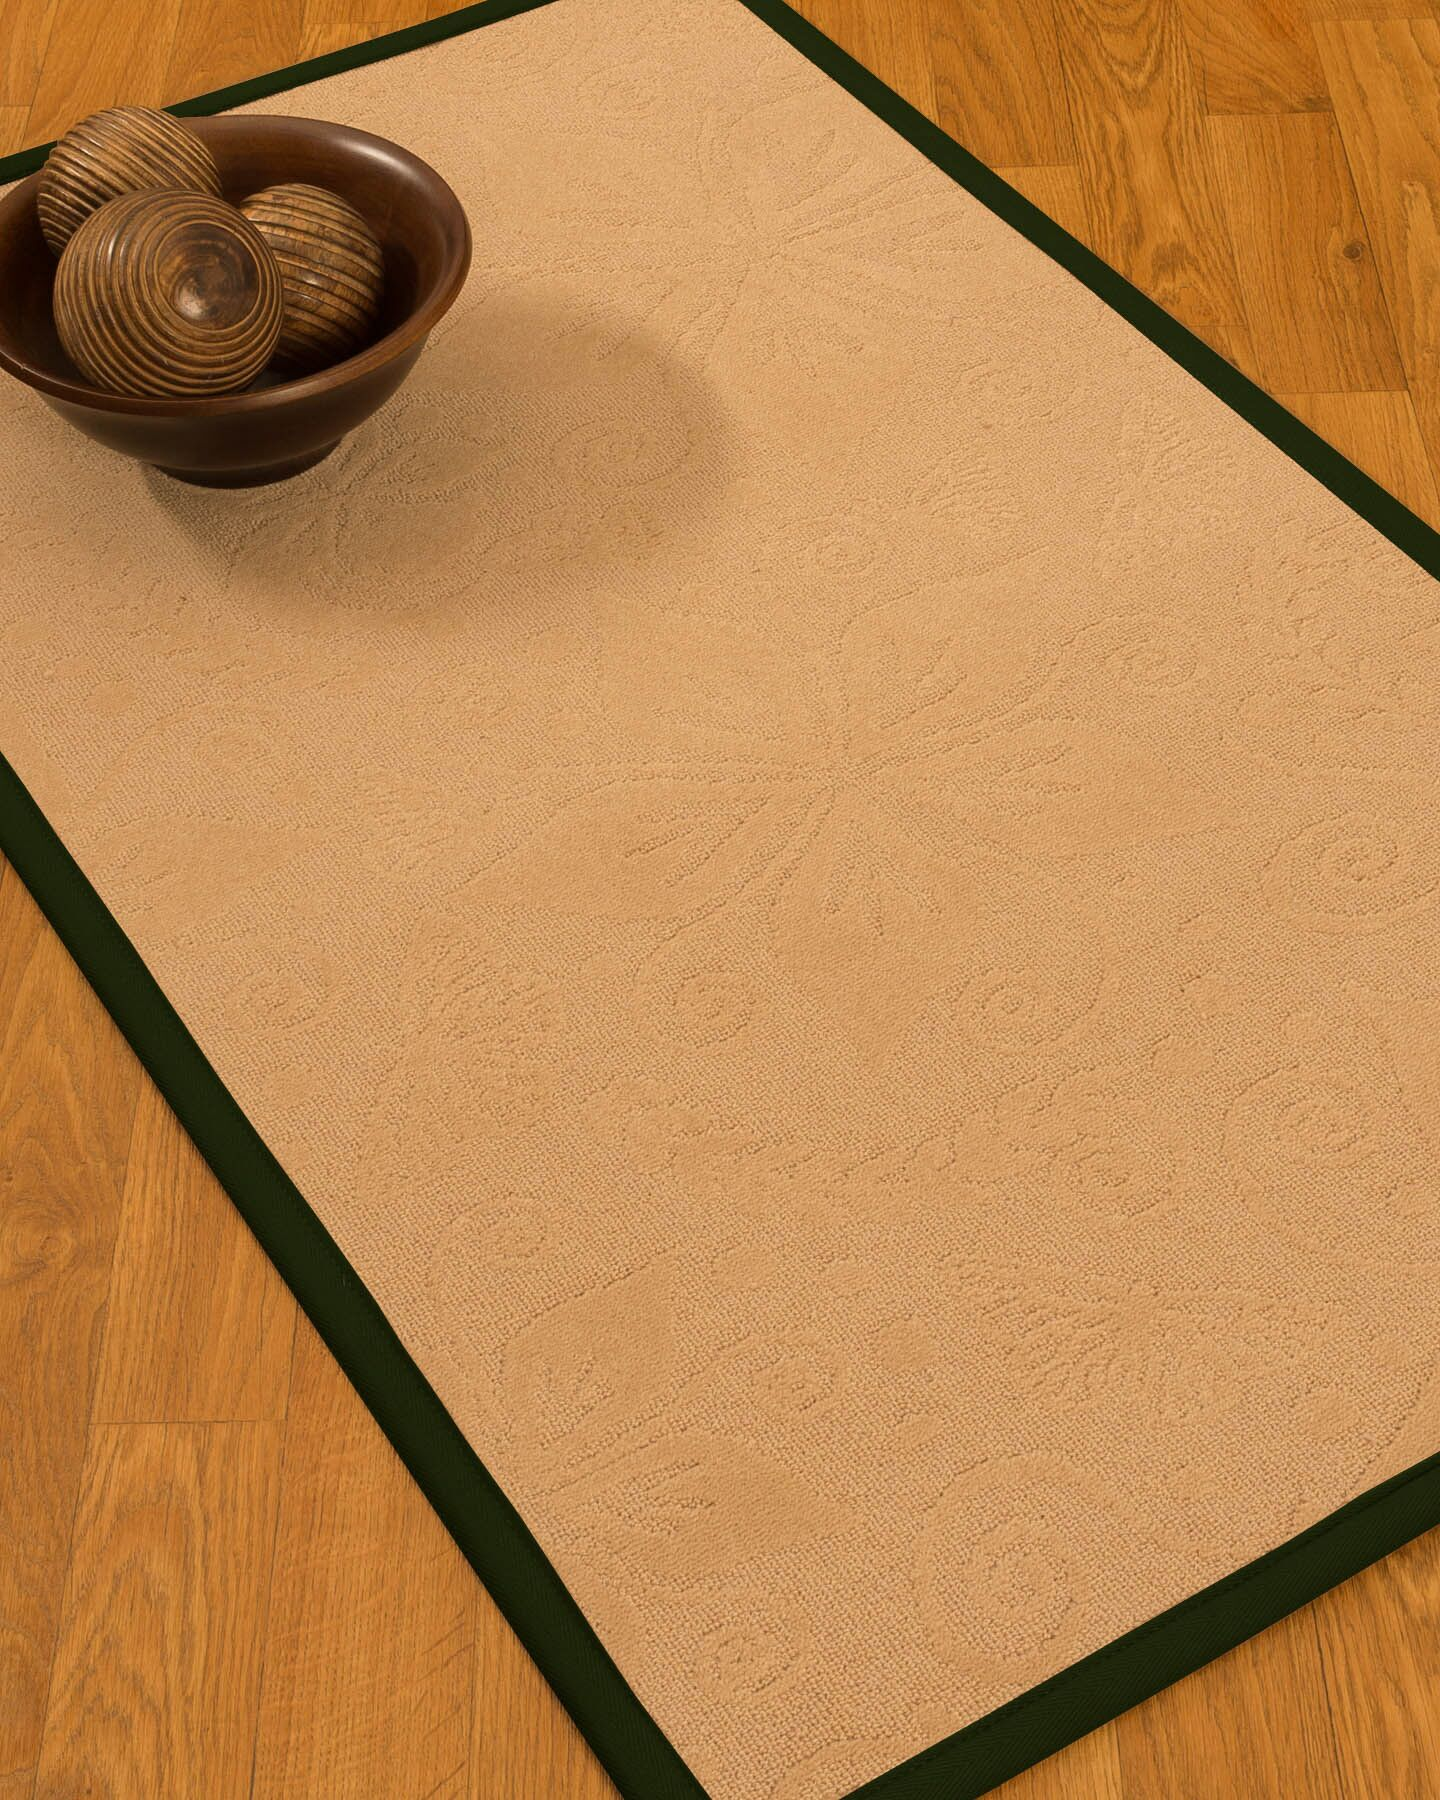 Vanmeter Border Hand-Woven Wool Beige/Moss Area Rug Rug Size: Rectangle 6' x 9', Rug Pad Included: Yes